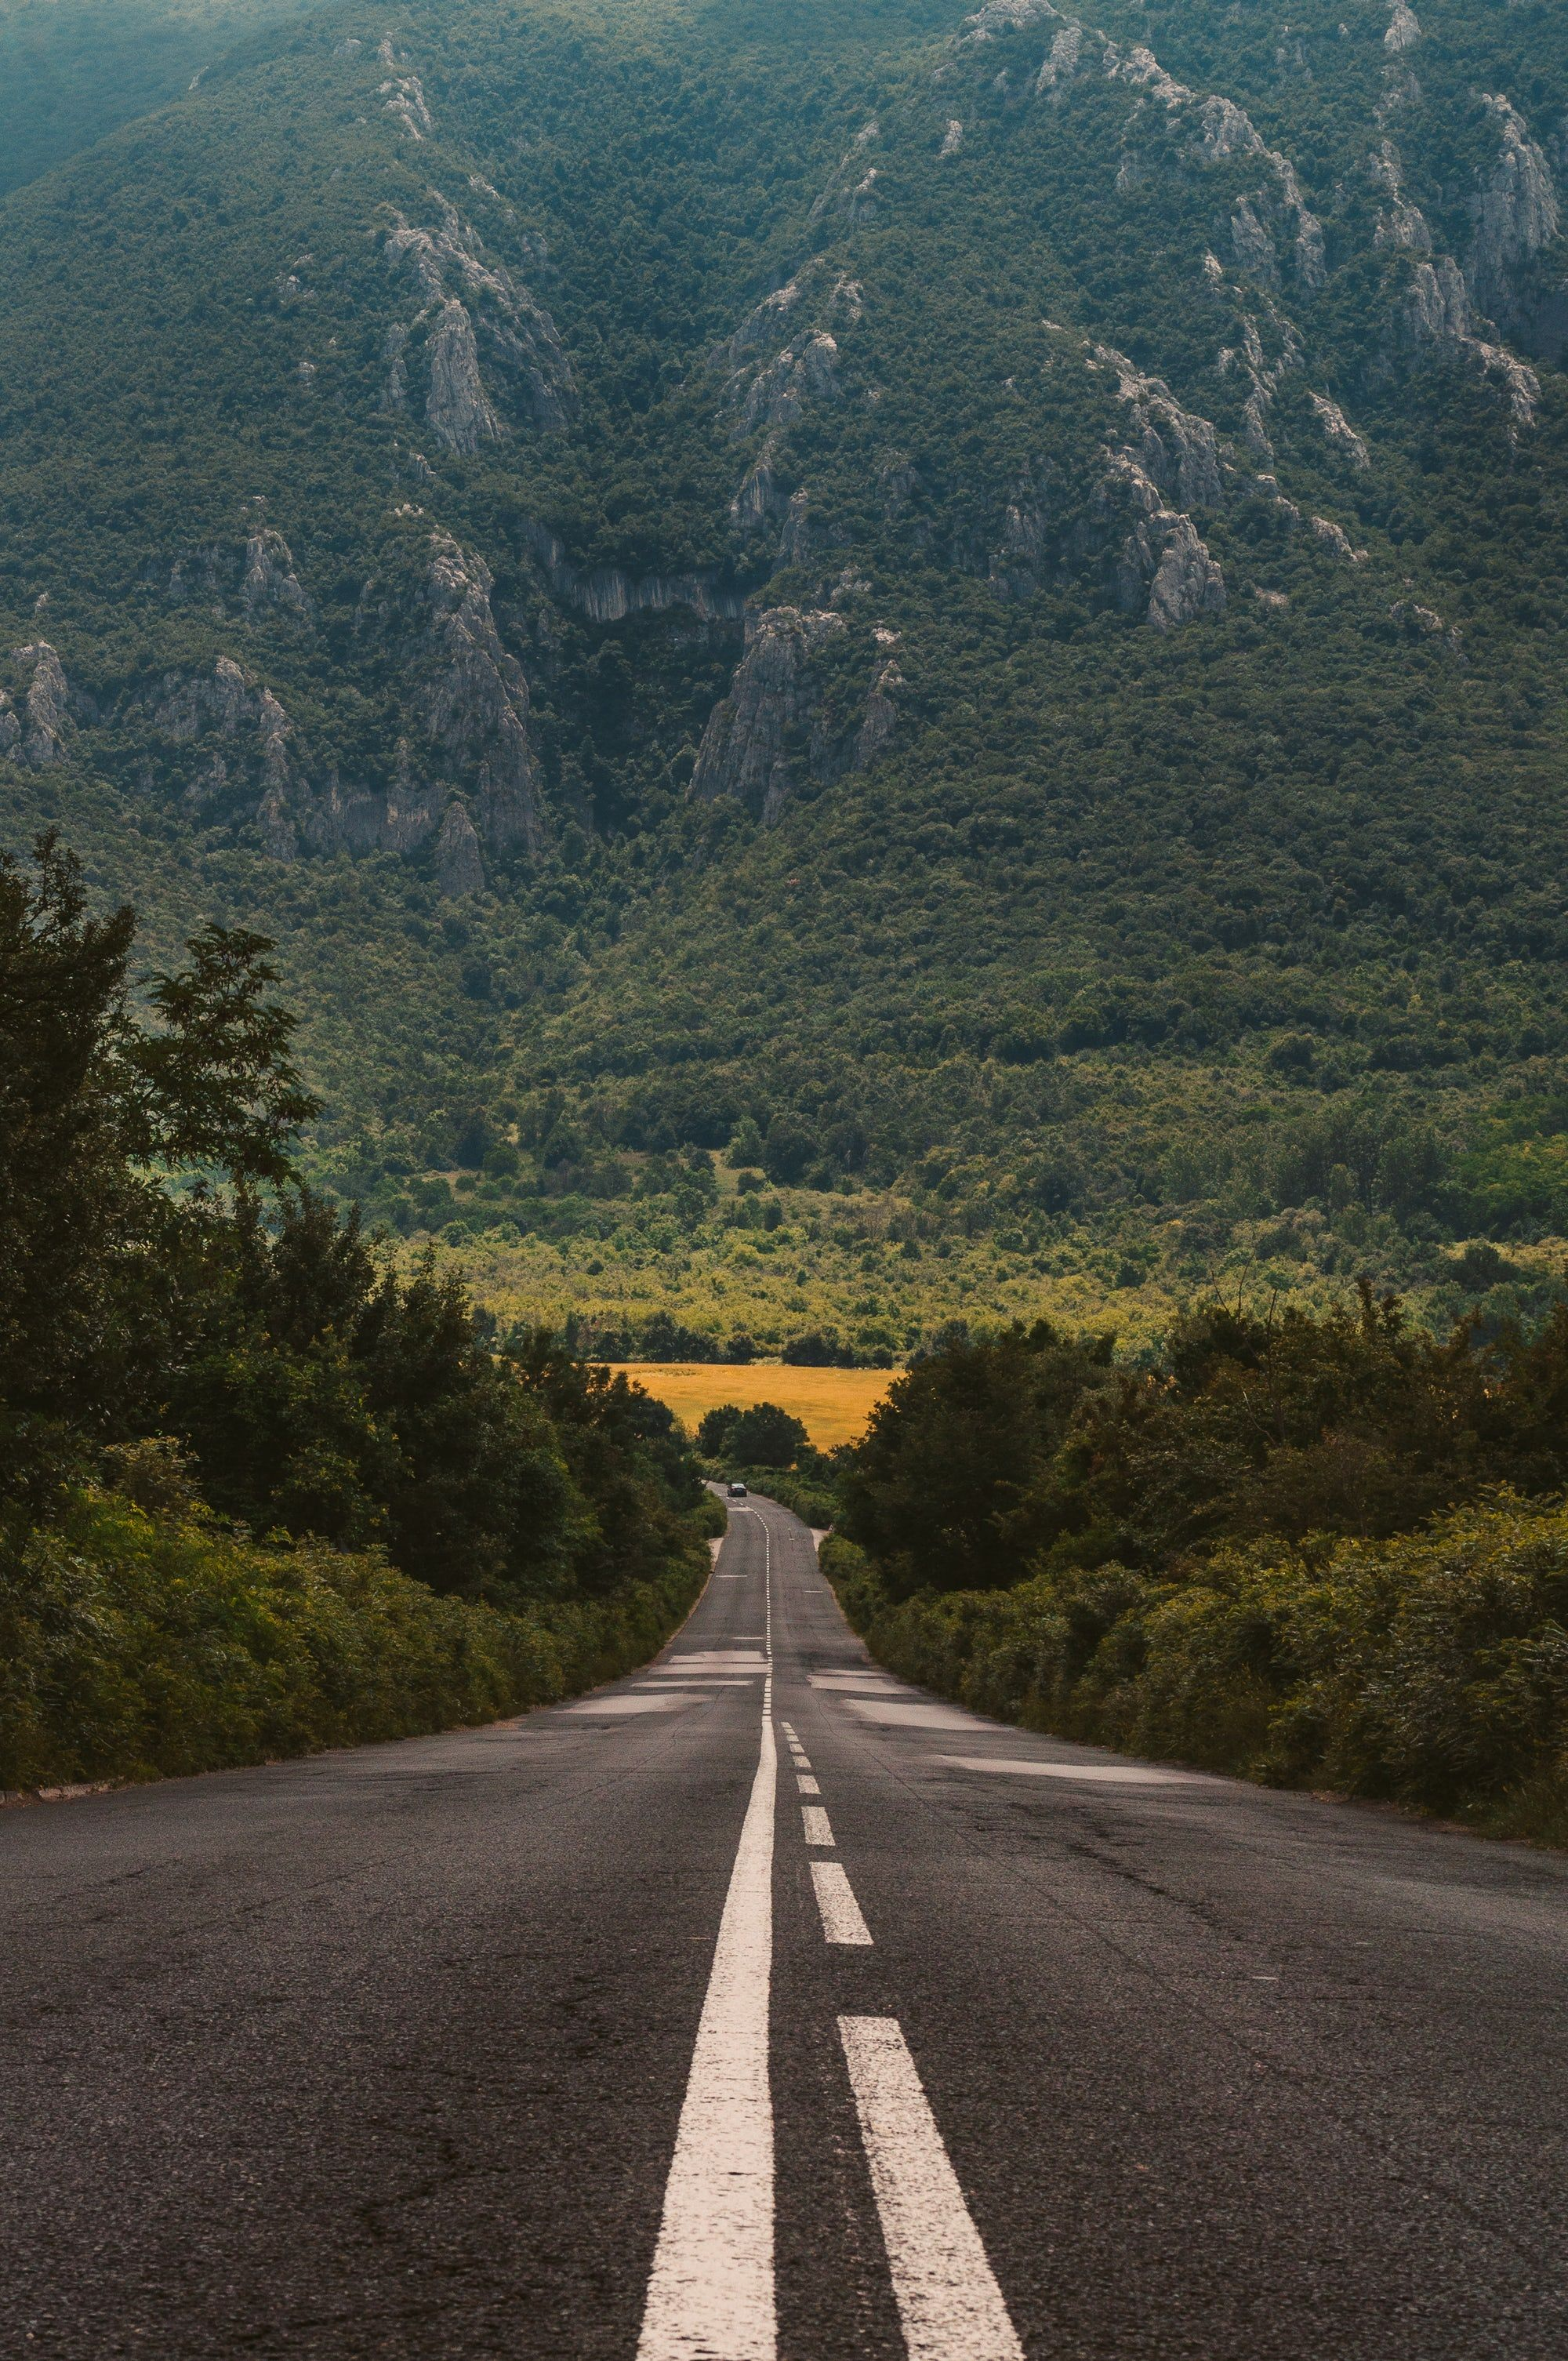 Thanks To Evgeni Evgeniev For Making This Photo Available Freely On Unsplash Road Photography Background Images Beautiful Roads